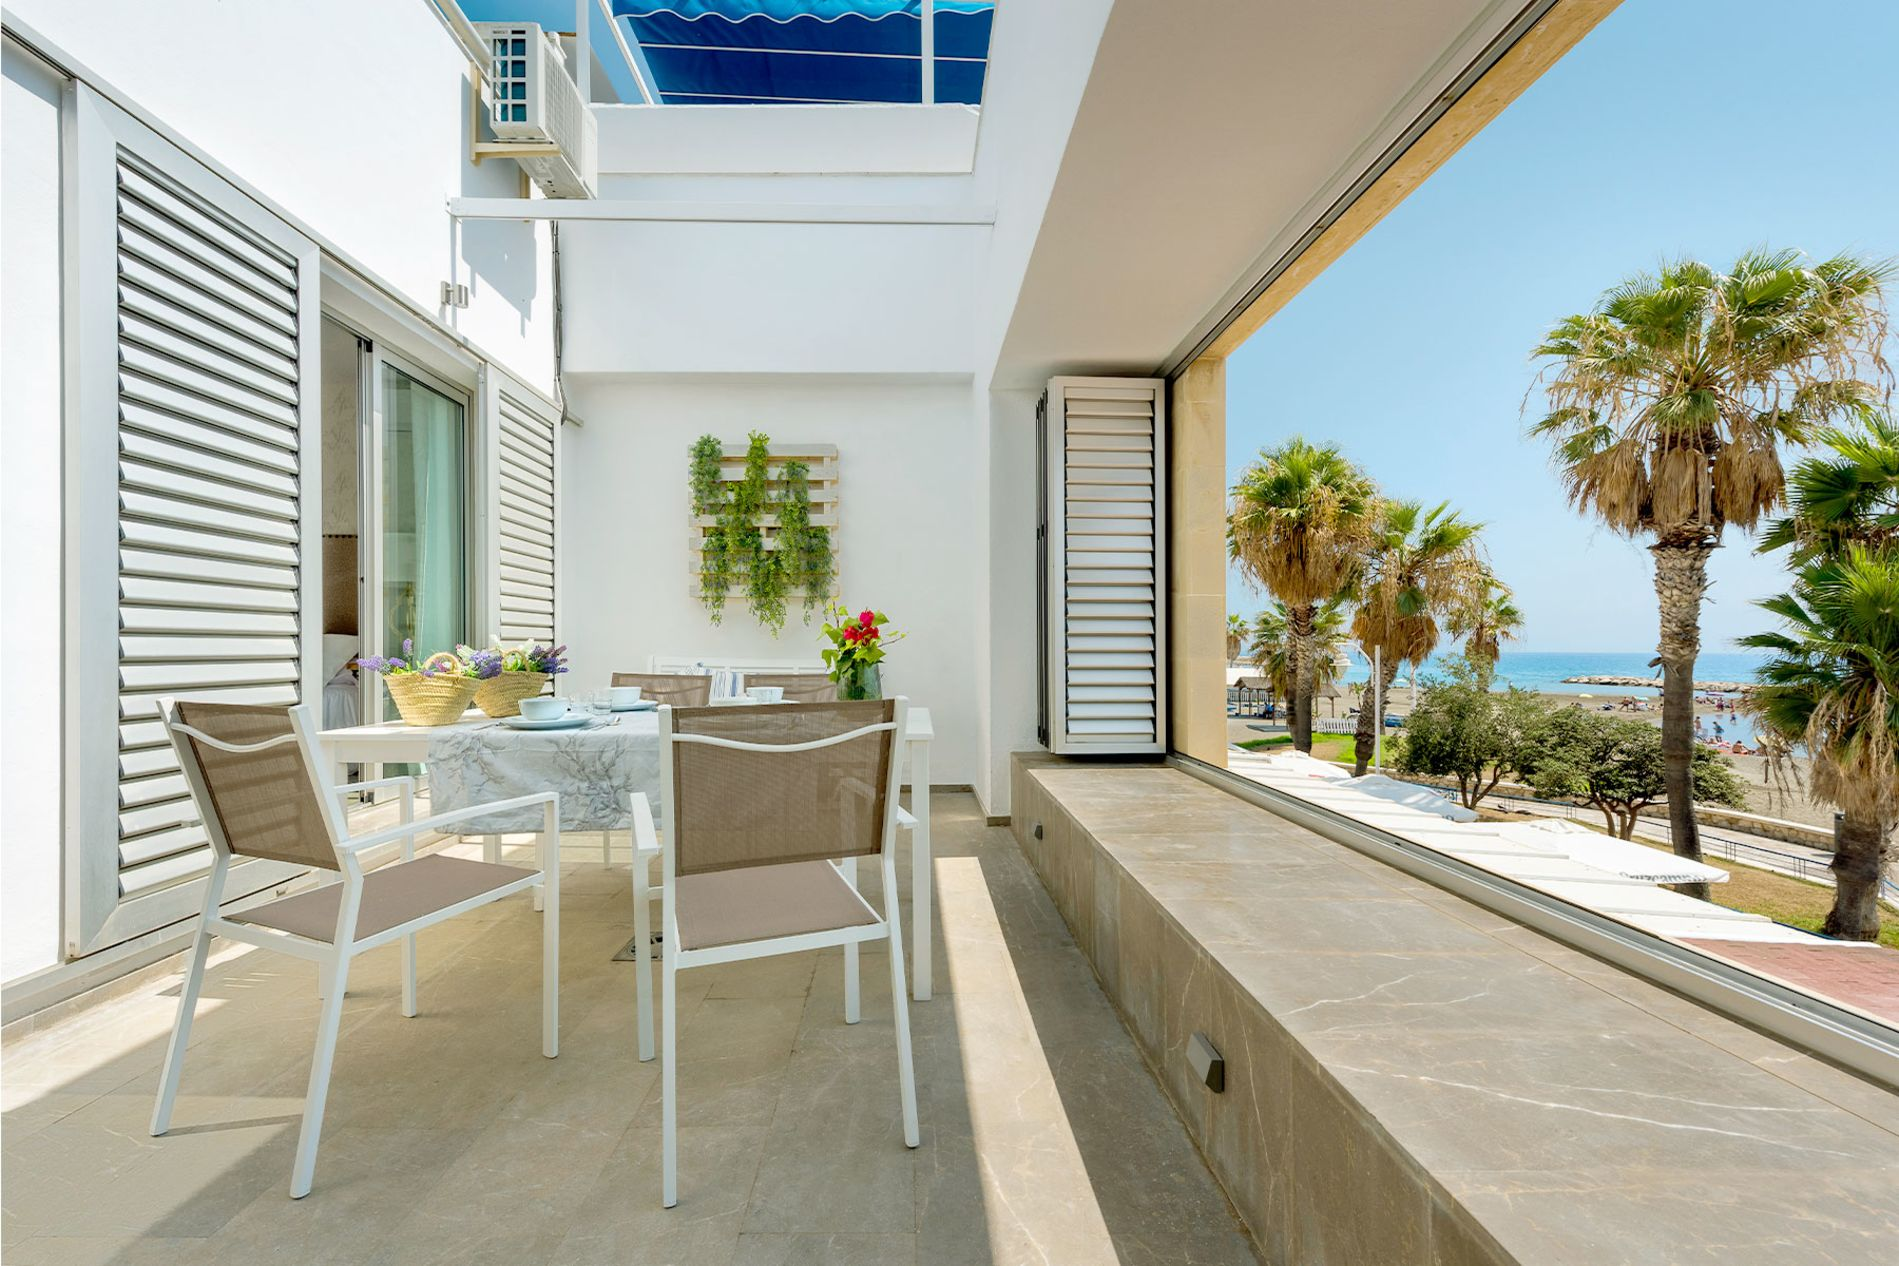 2 Bedroom House with a Fabulous Terrace/ Balcony in Malaga